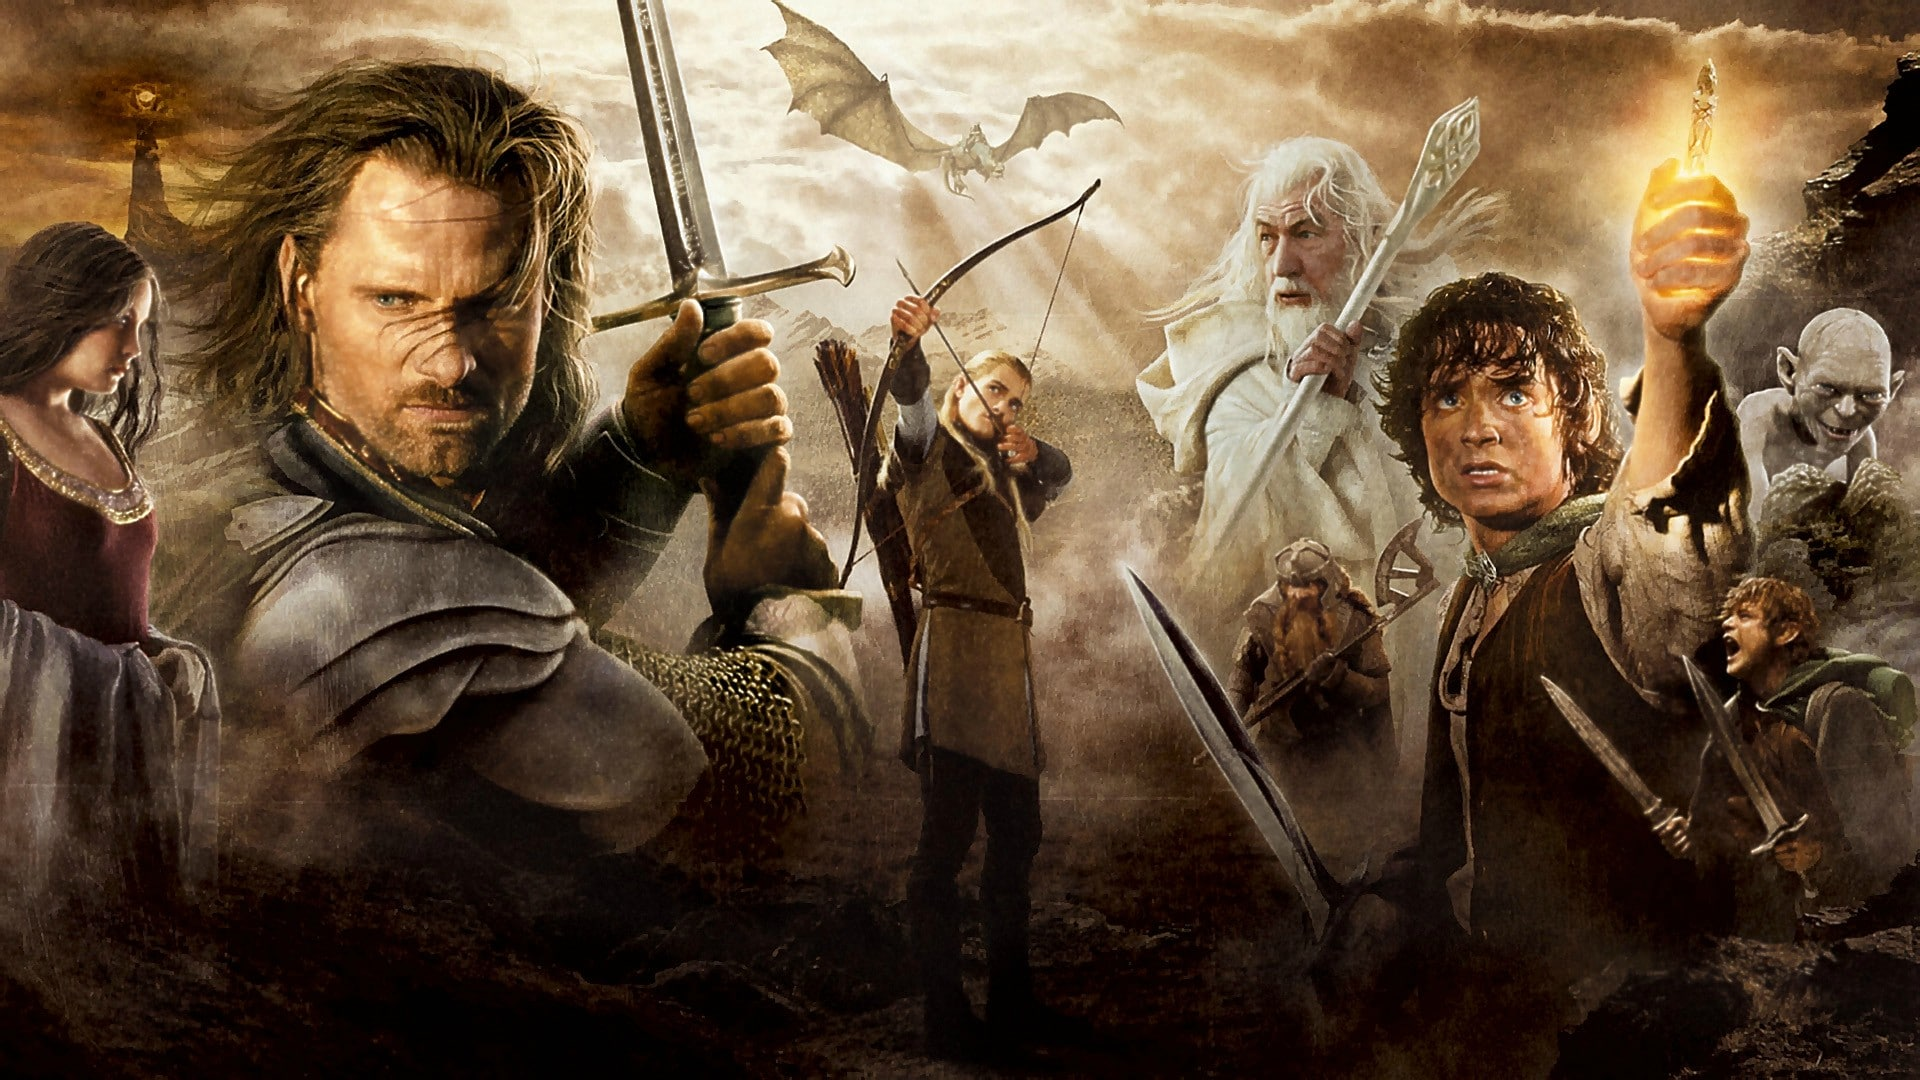 Lord Of The Rings Series On Amazon Prime